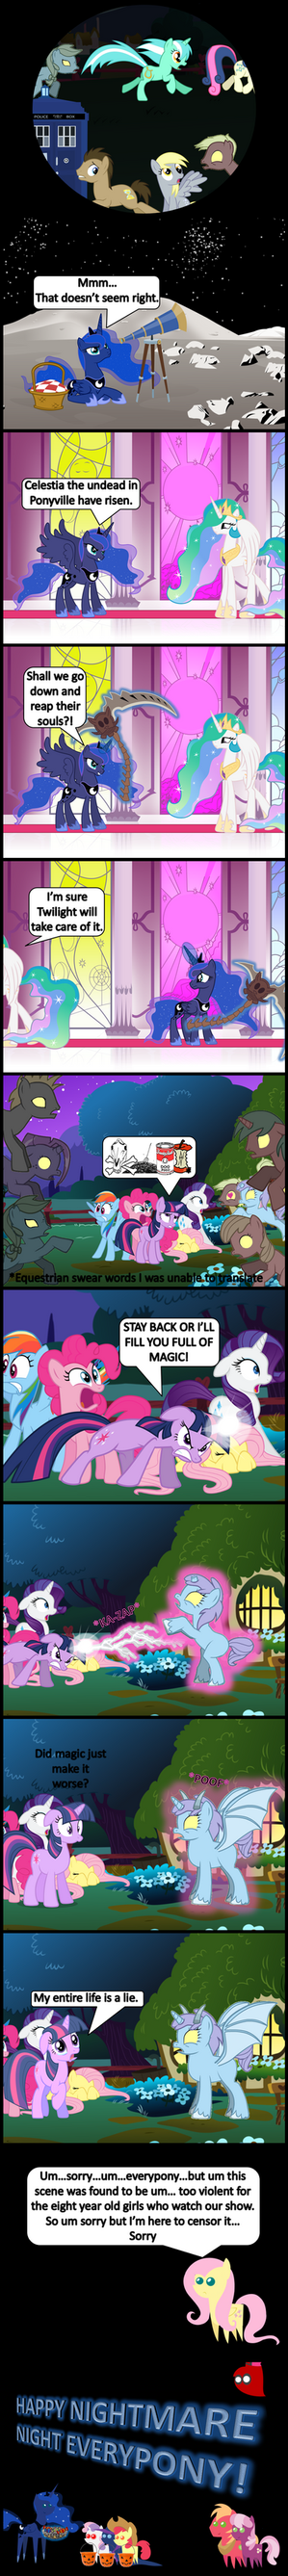 9 and 10 Nightmare Night Special by bronybyexception